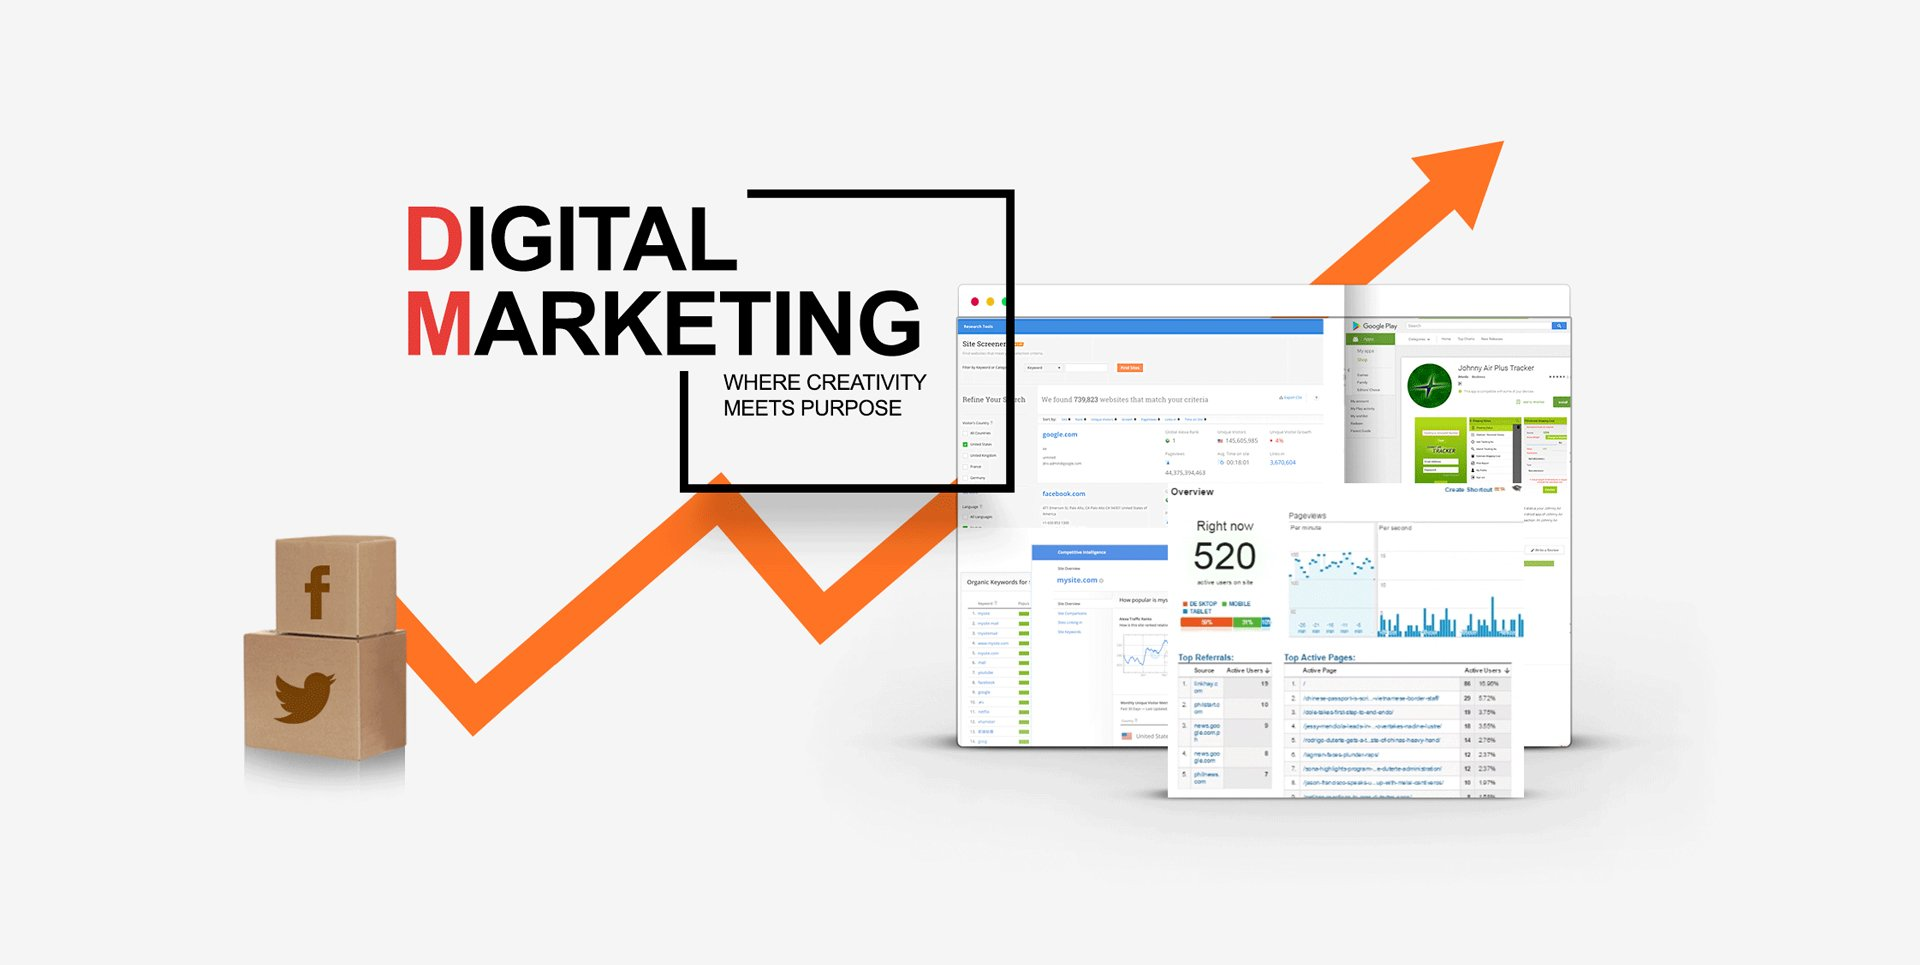 5 Reasons to Hire a Digital Marketing Agency for Small Businesses